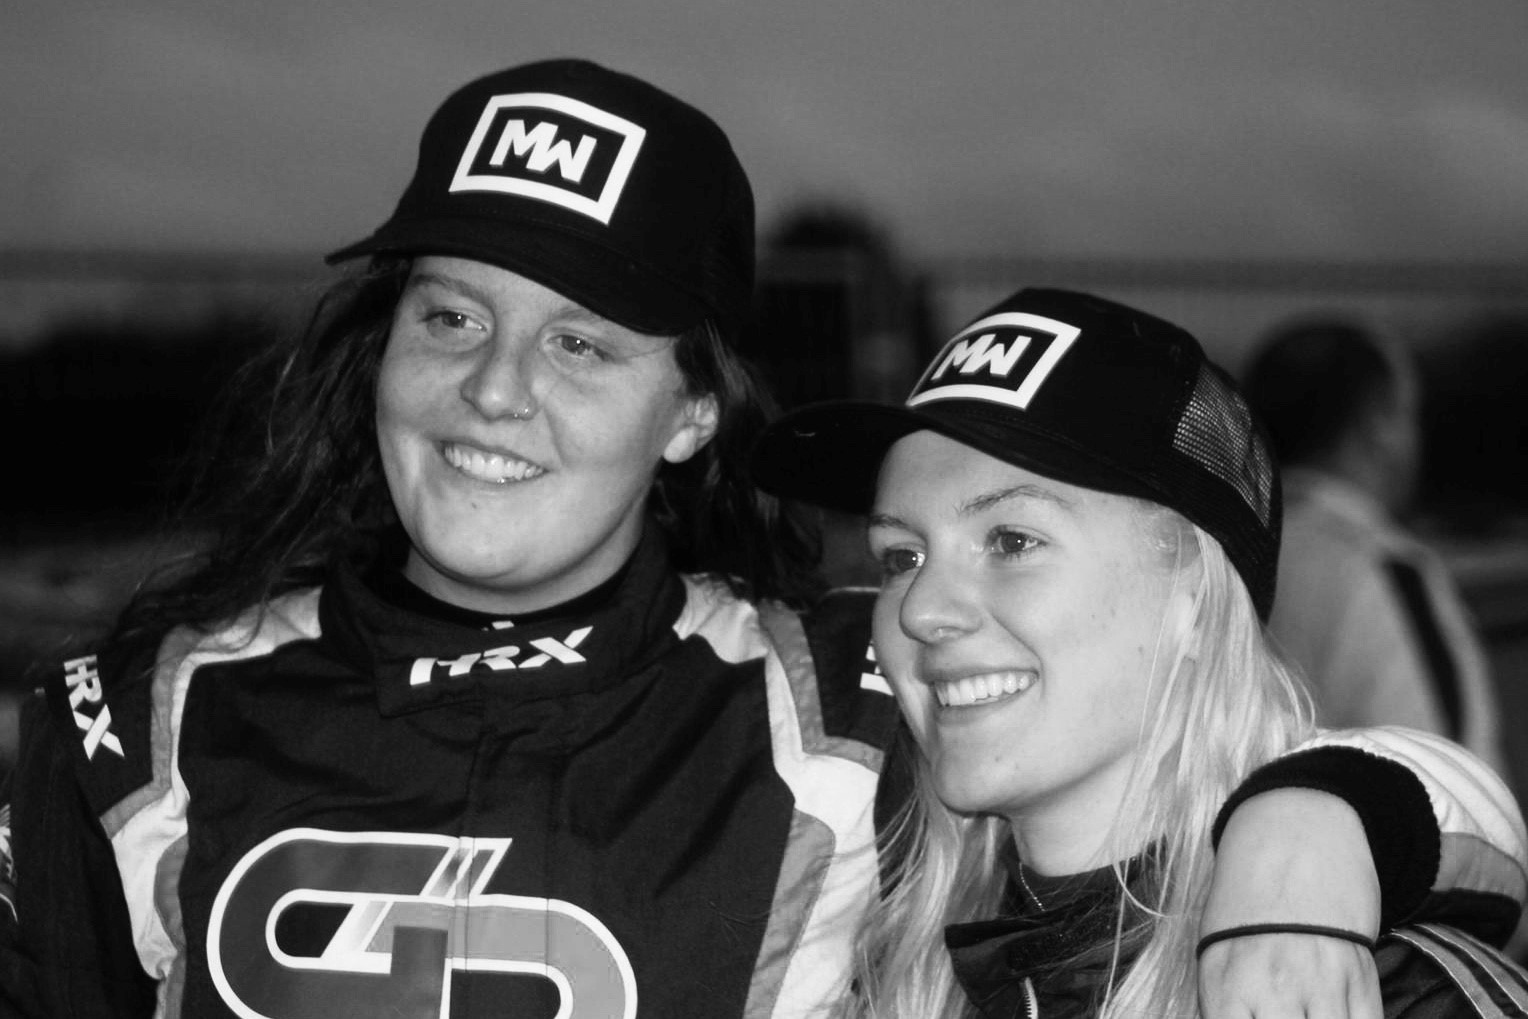 Team Motorsport Woman on the Podium